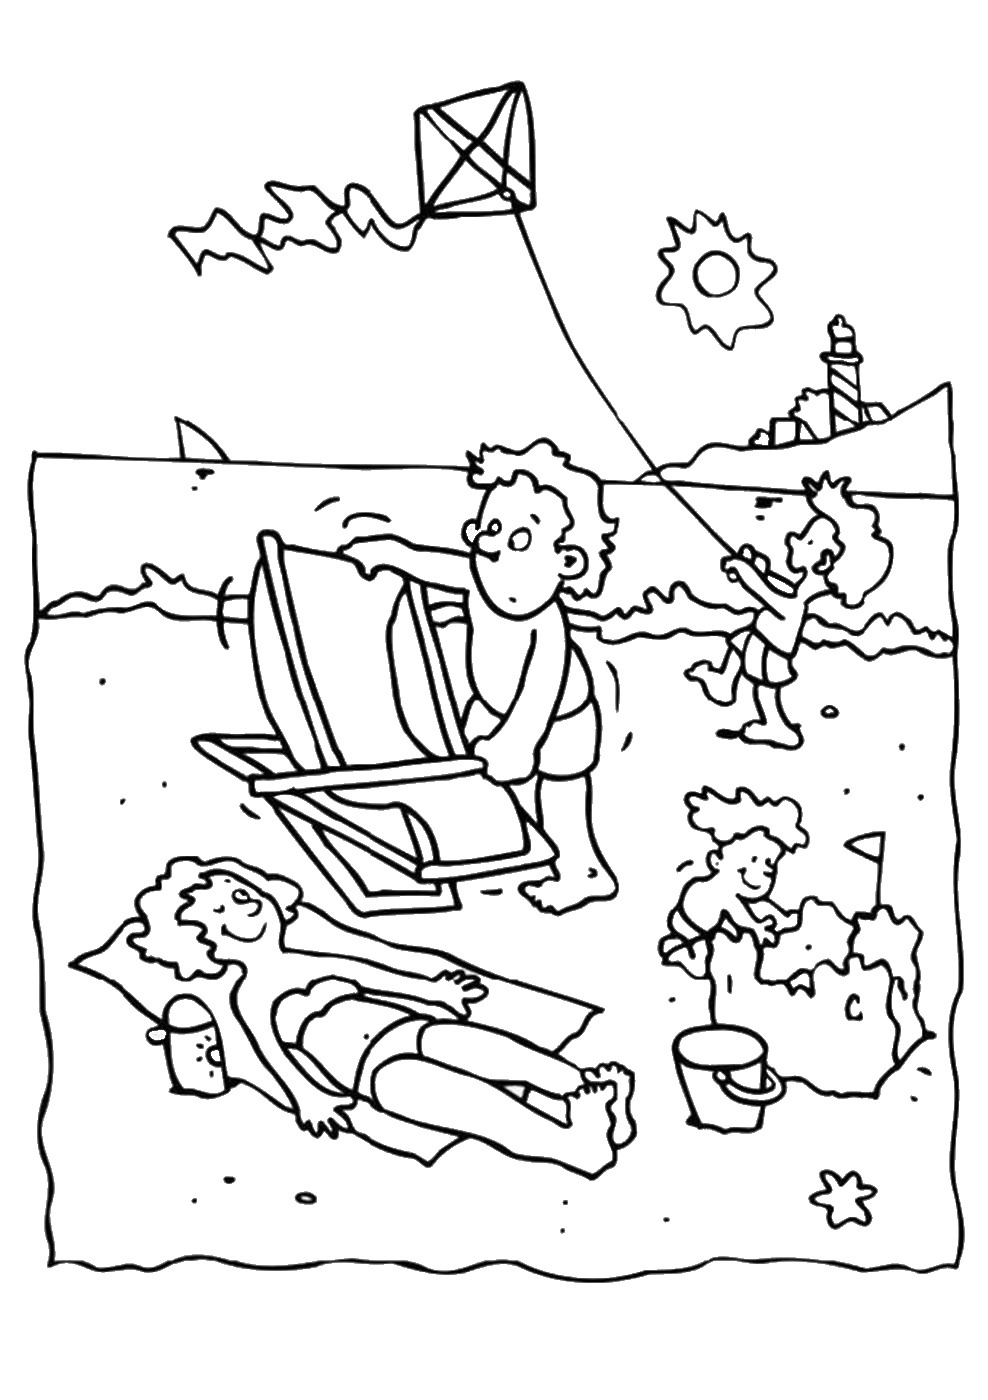 summer color sheets interactive magazine free summer coloring pages summer color sheets